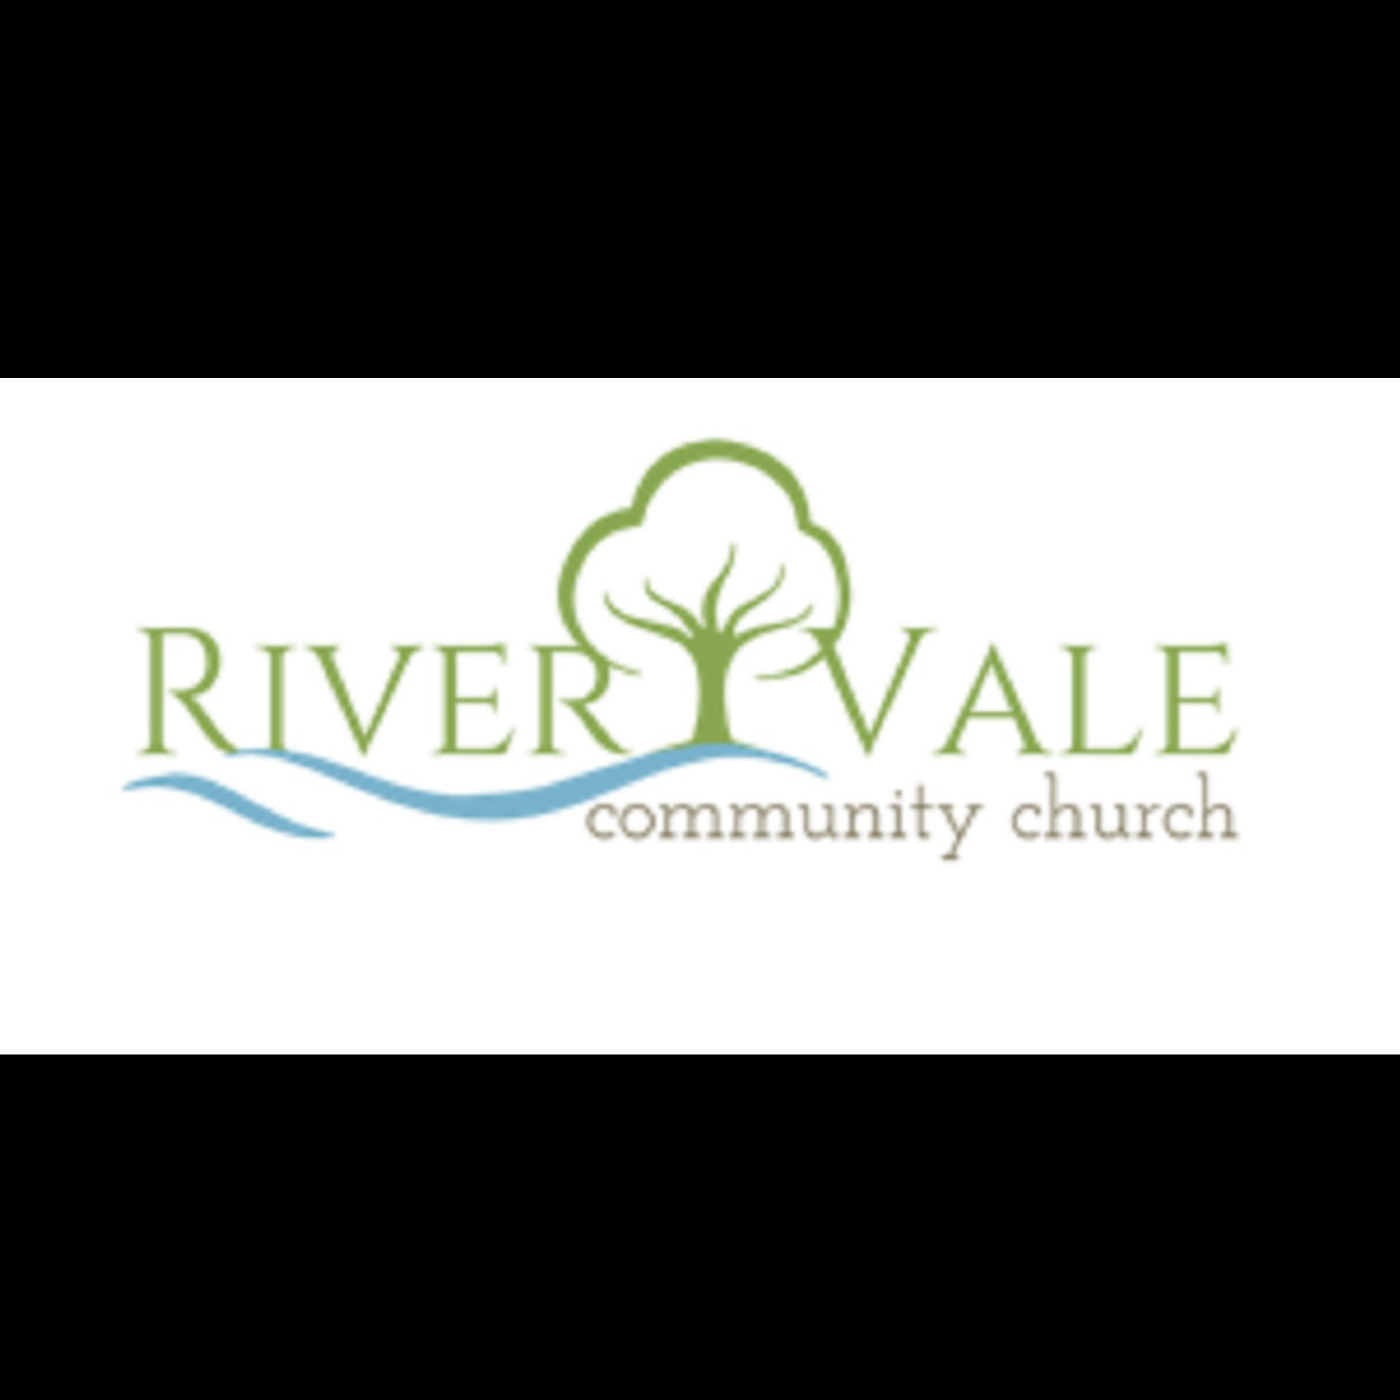 River Vale Community Church